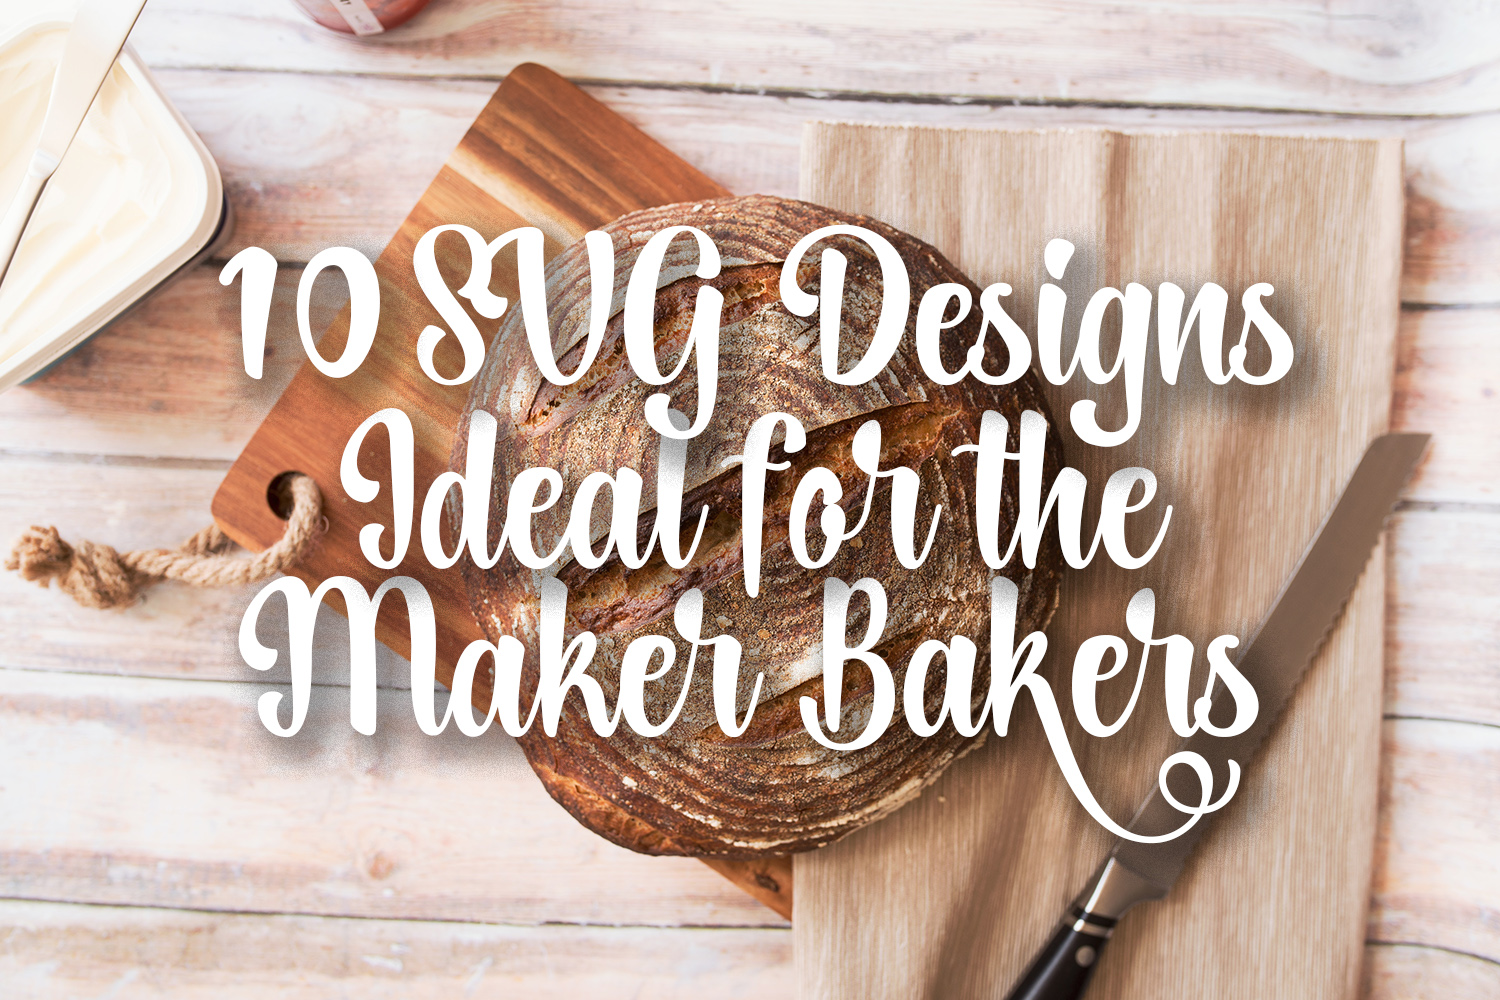 10 SVG Designs Ideal for the Maker Bakers